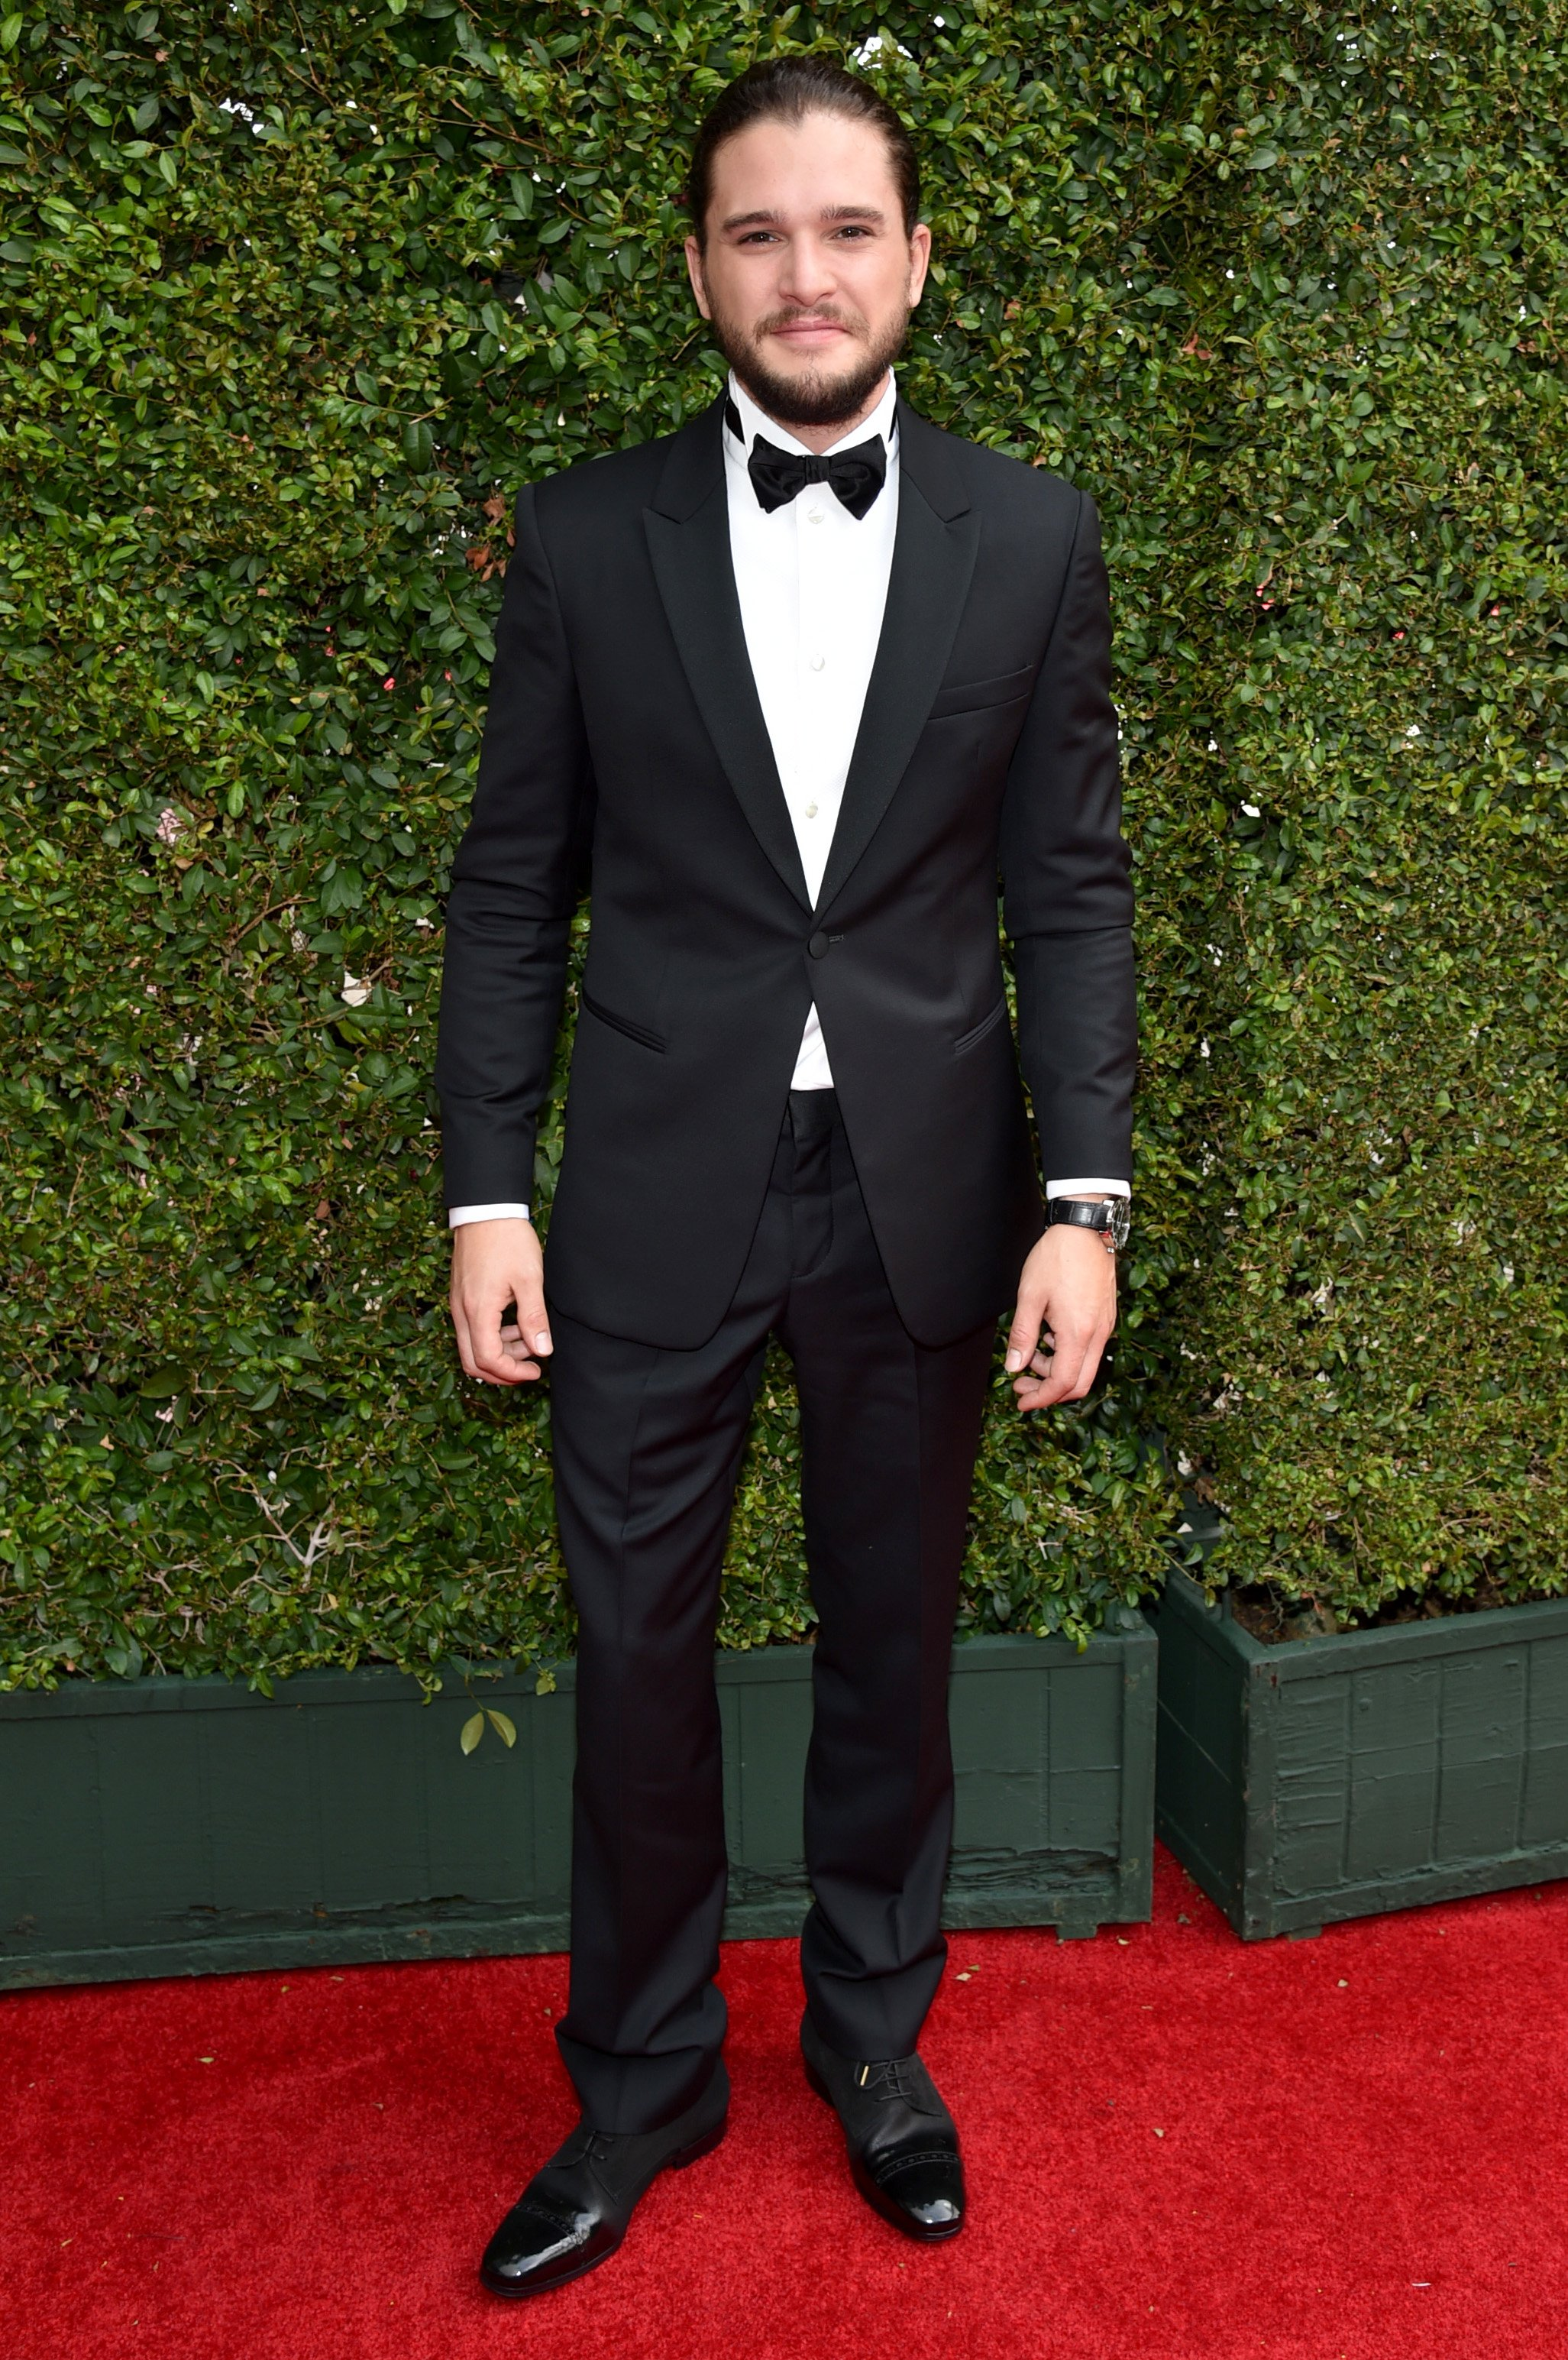 Kit Harington arrives at the 66th Primetime Emmy Awards at the Nokia Theatre L.A. Live on Monday, Aug. 25, 2014, in Los Angeles.